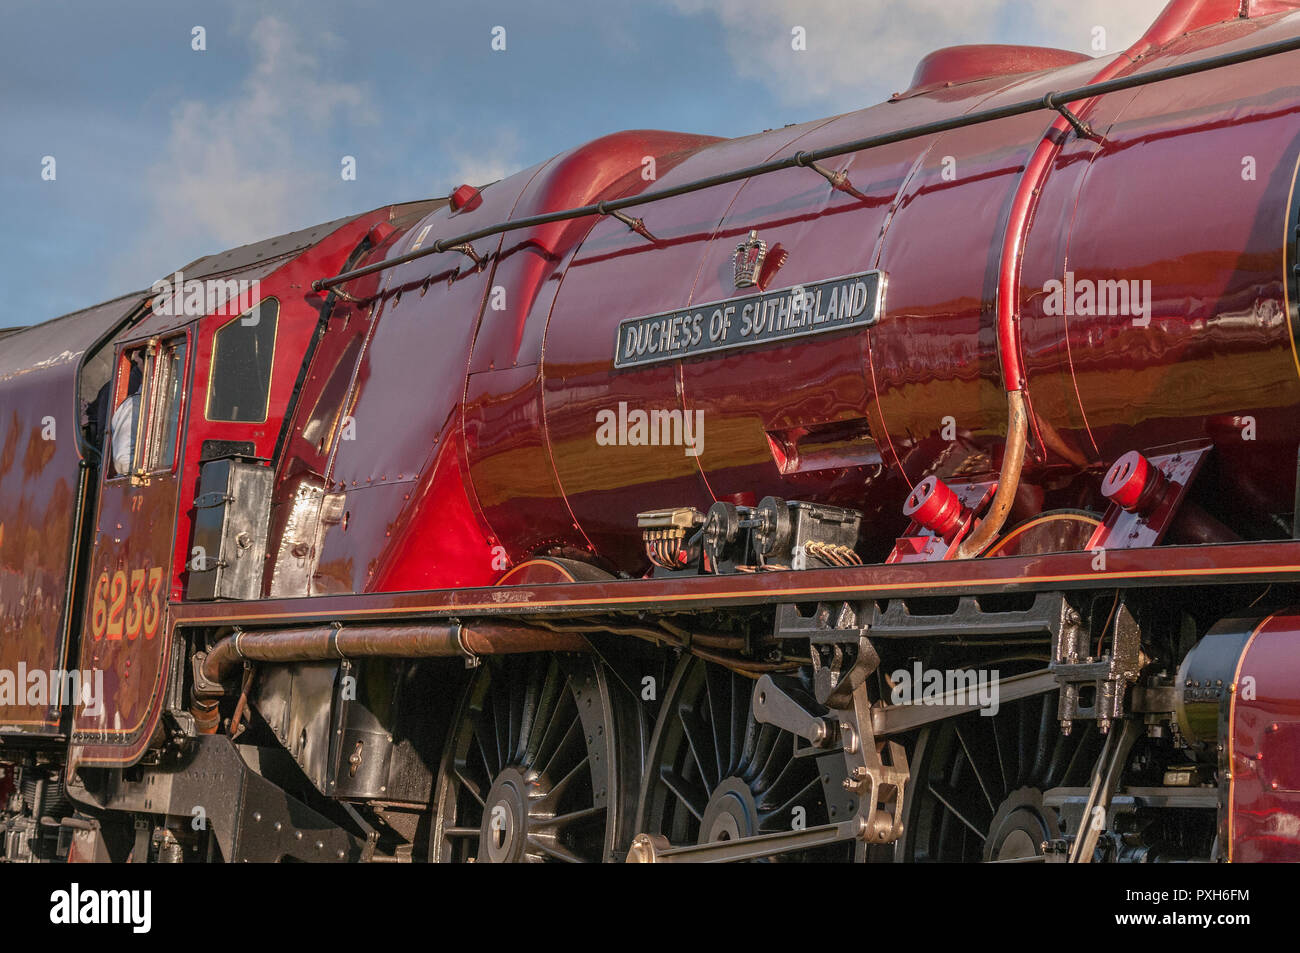 No.46233 'Duchess of Sutherland' the Midland and Scottish Railway (LMS) Princess Coronation Class 4-6-2 'Pacific' type steam locomotive built in 1938. - Stock Image